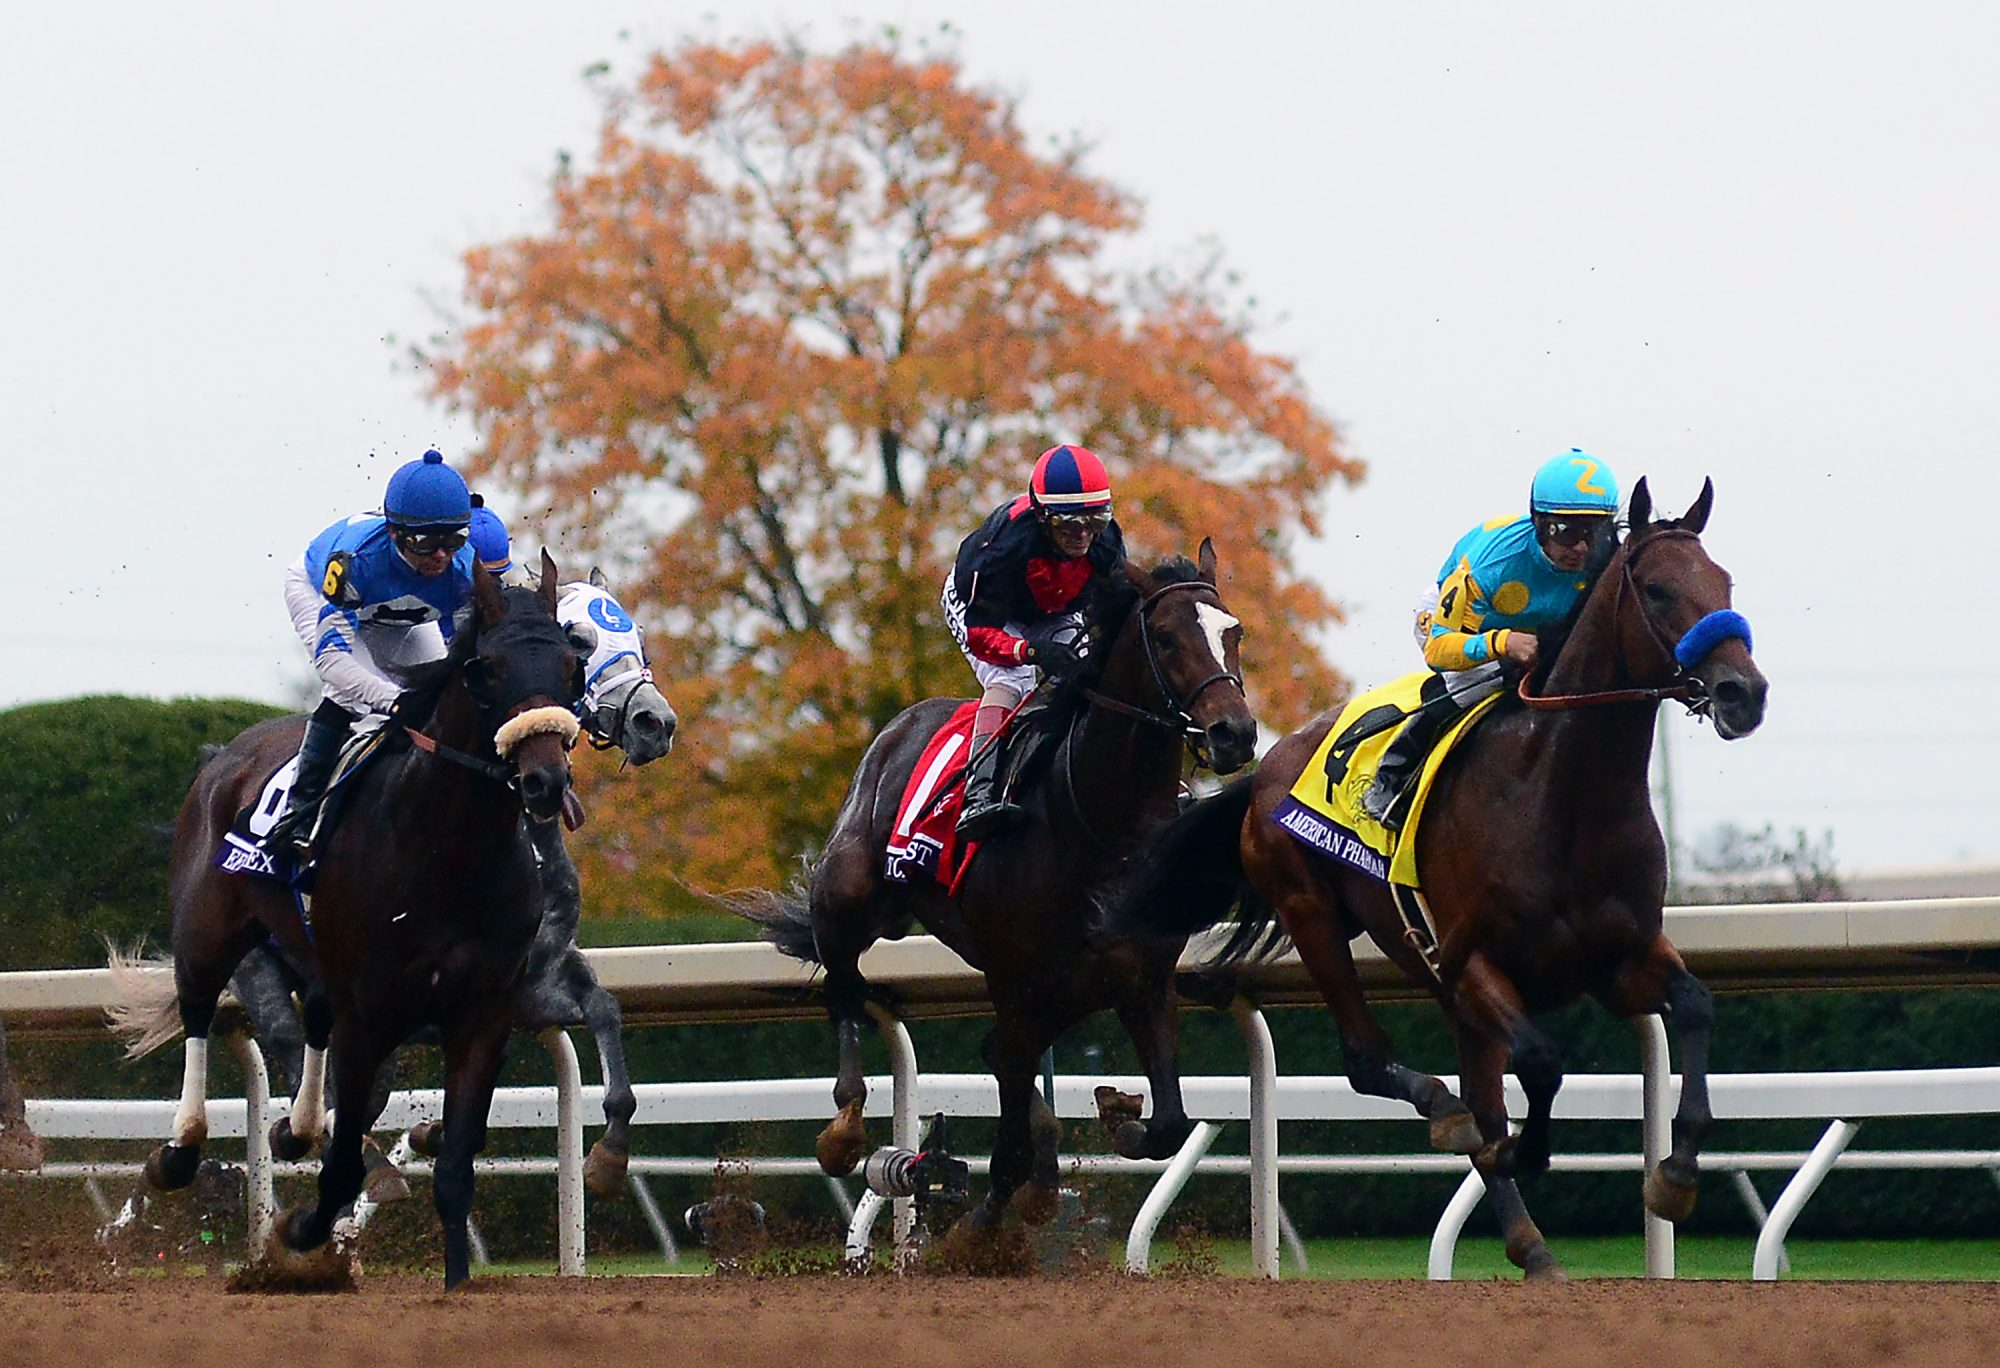 Keeneland Horse Race in Lexington, Kentucky